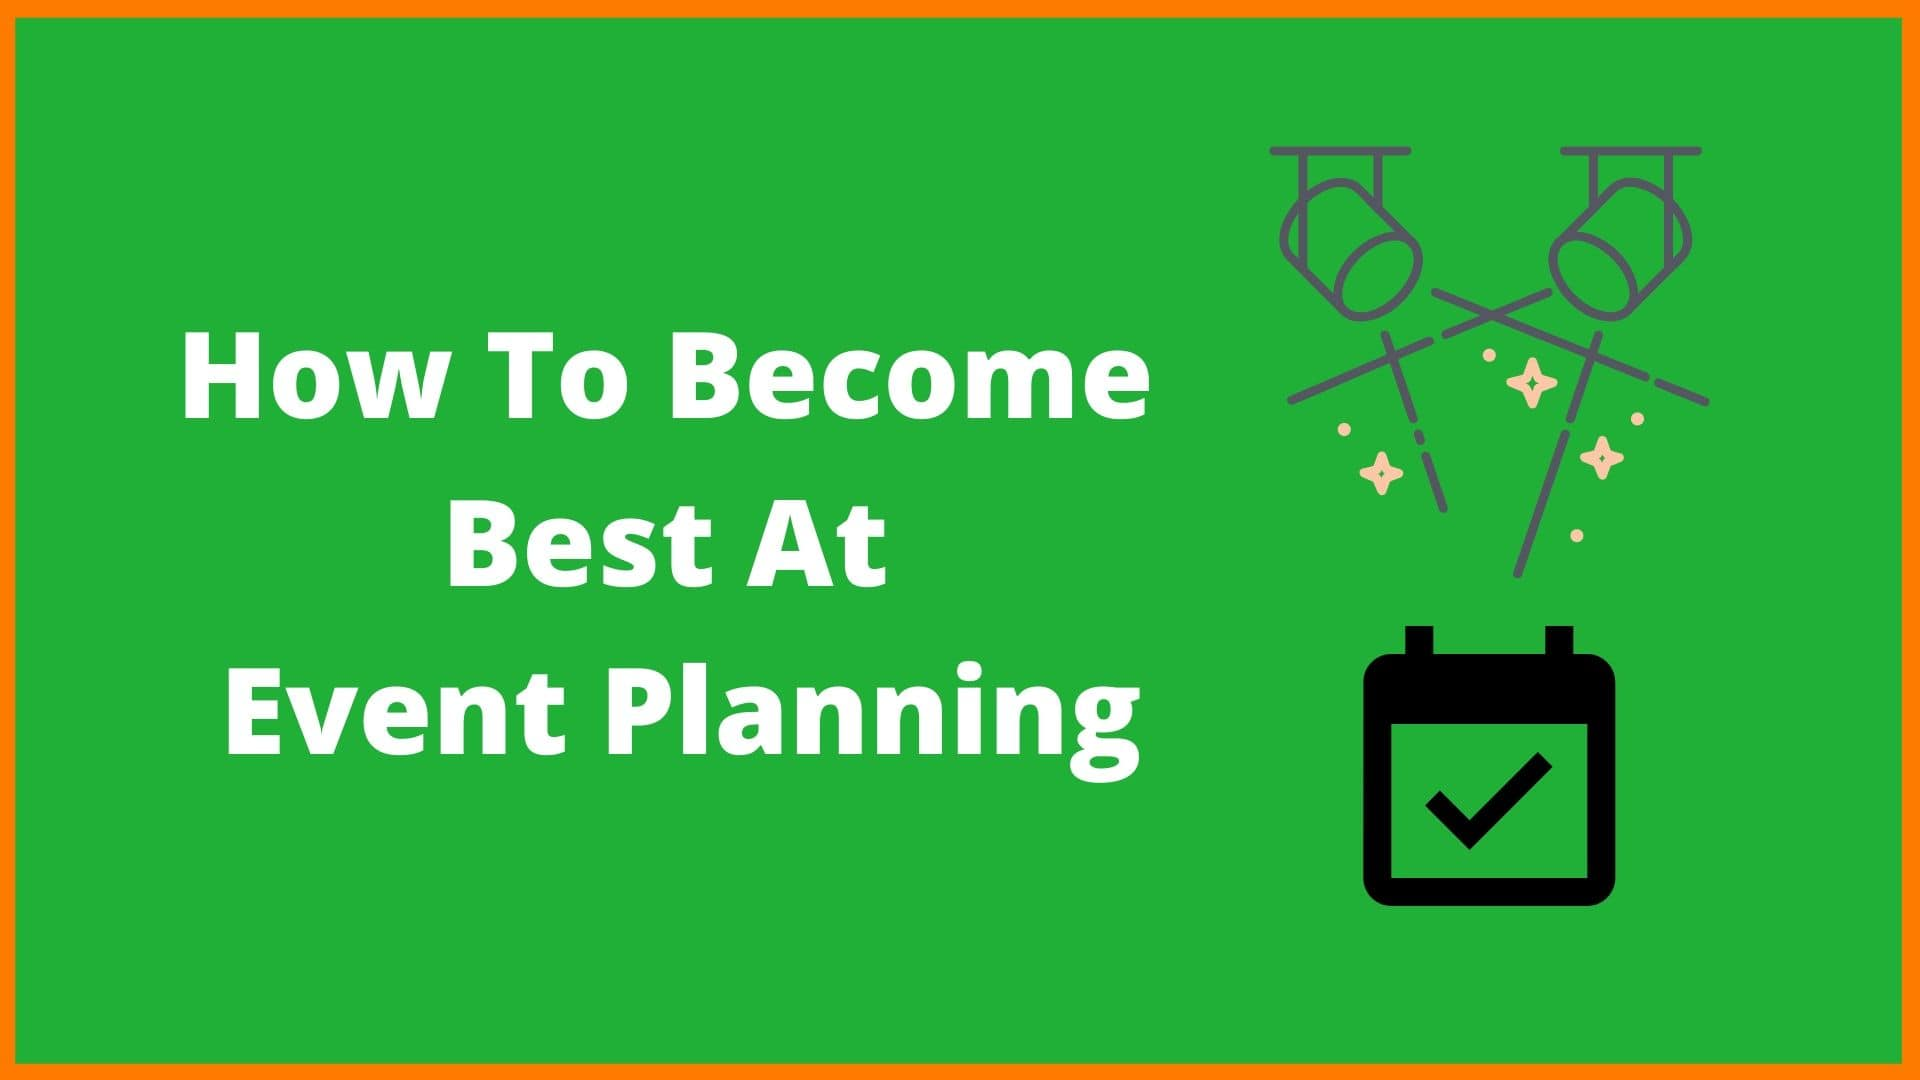 How To Become Best At Event Planning